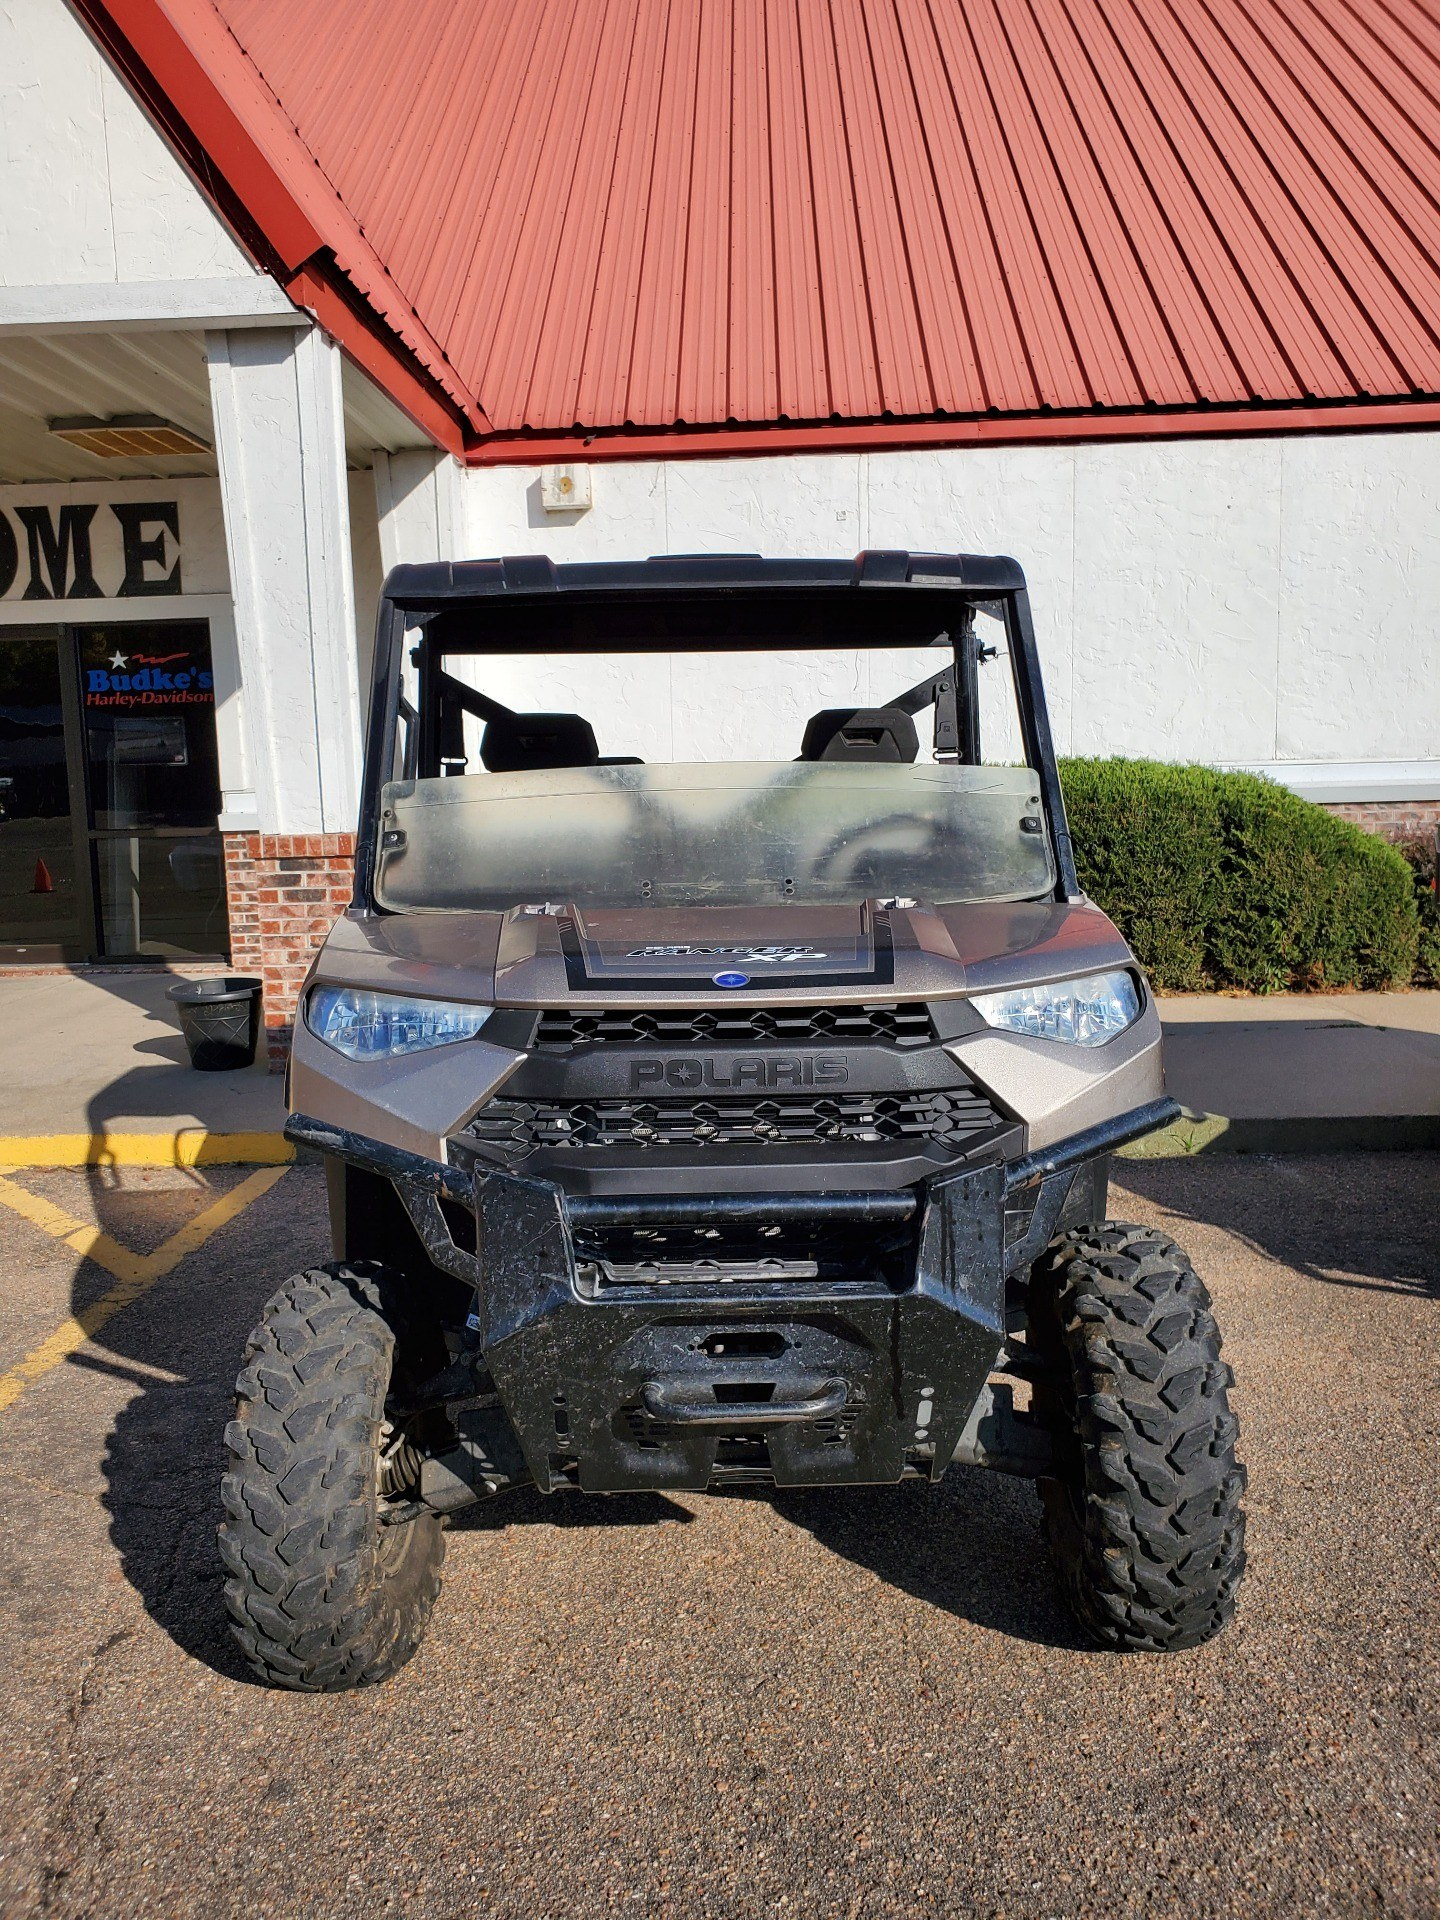 2018 Polaris Ranger XP 1000 EPS in North Platte, Nebraska - Photo 5